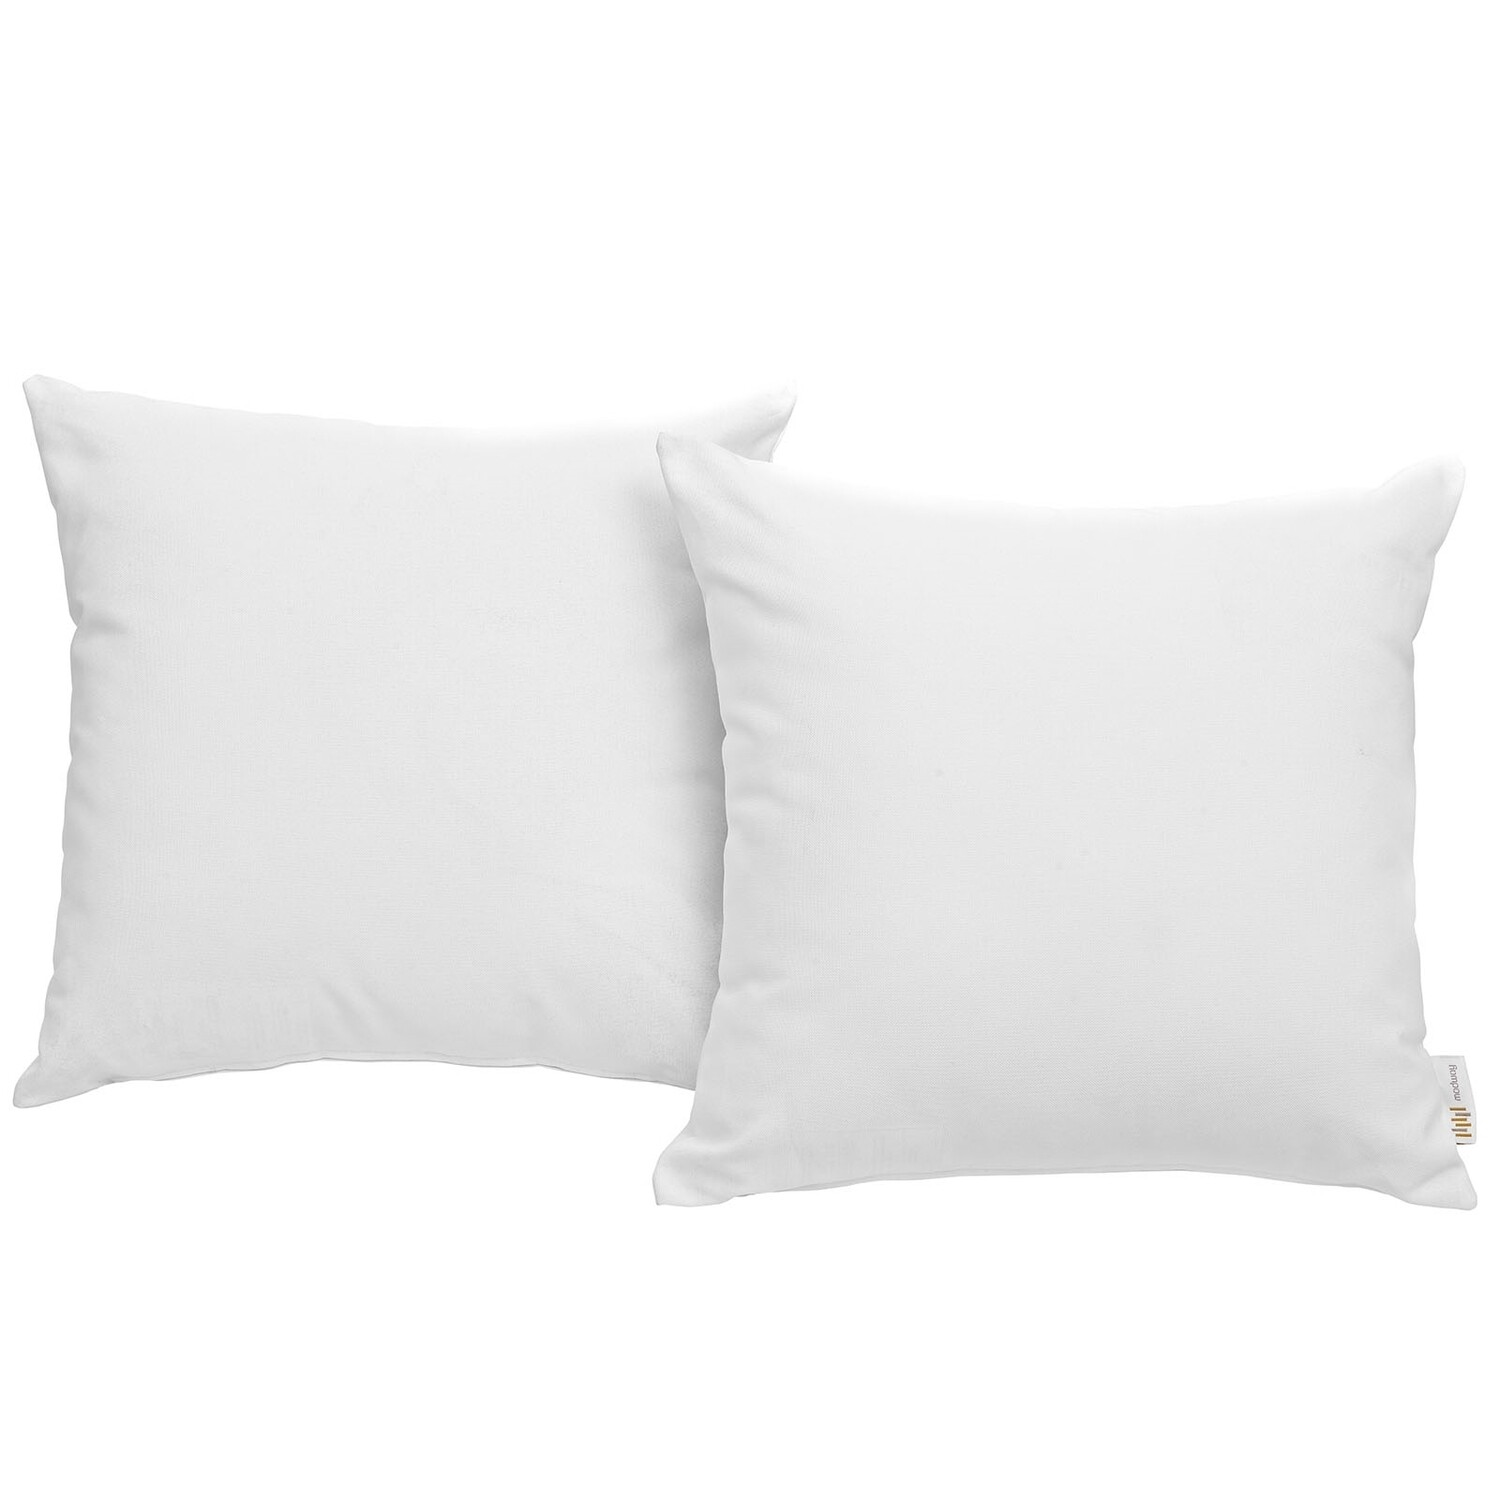 "Hinsdale Patio 2 Piece Pillow Set  17"" x 17"" in White"